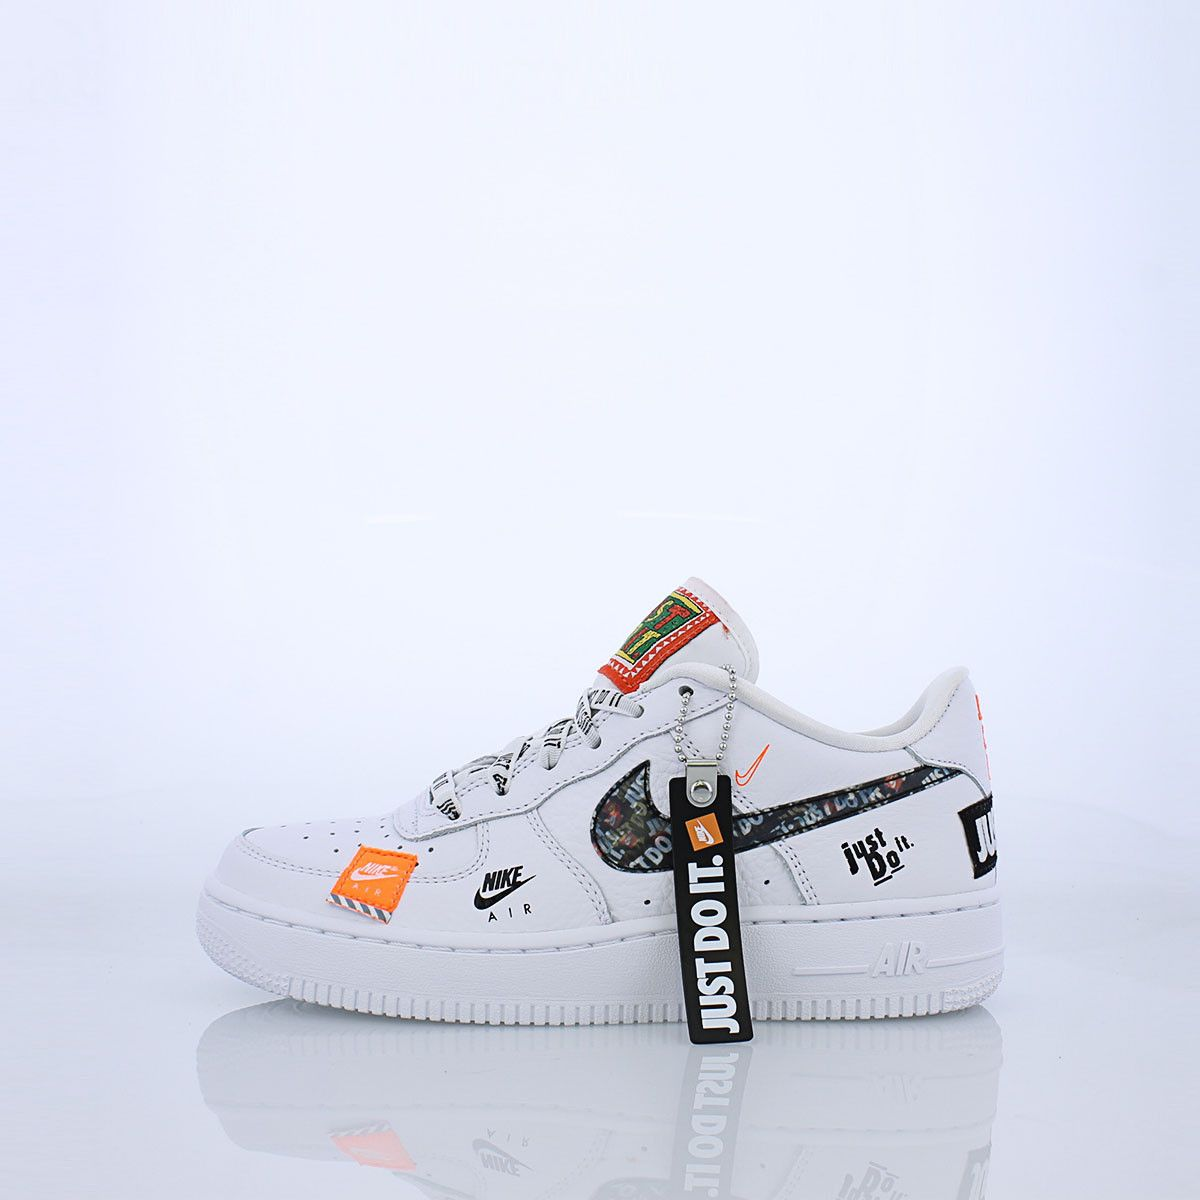 All Over Prints Of The Nike Air Force 1 Join Together For The 30th Anniversary Of Jdi Catchphrase With A Kid S Version C Nike Air Force Nike Shoes Air Force 1